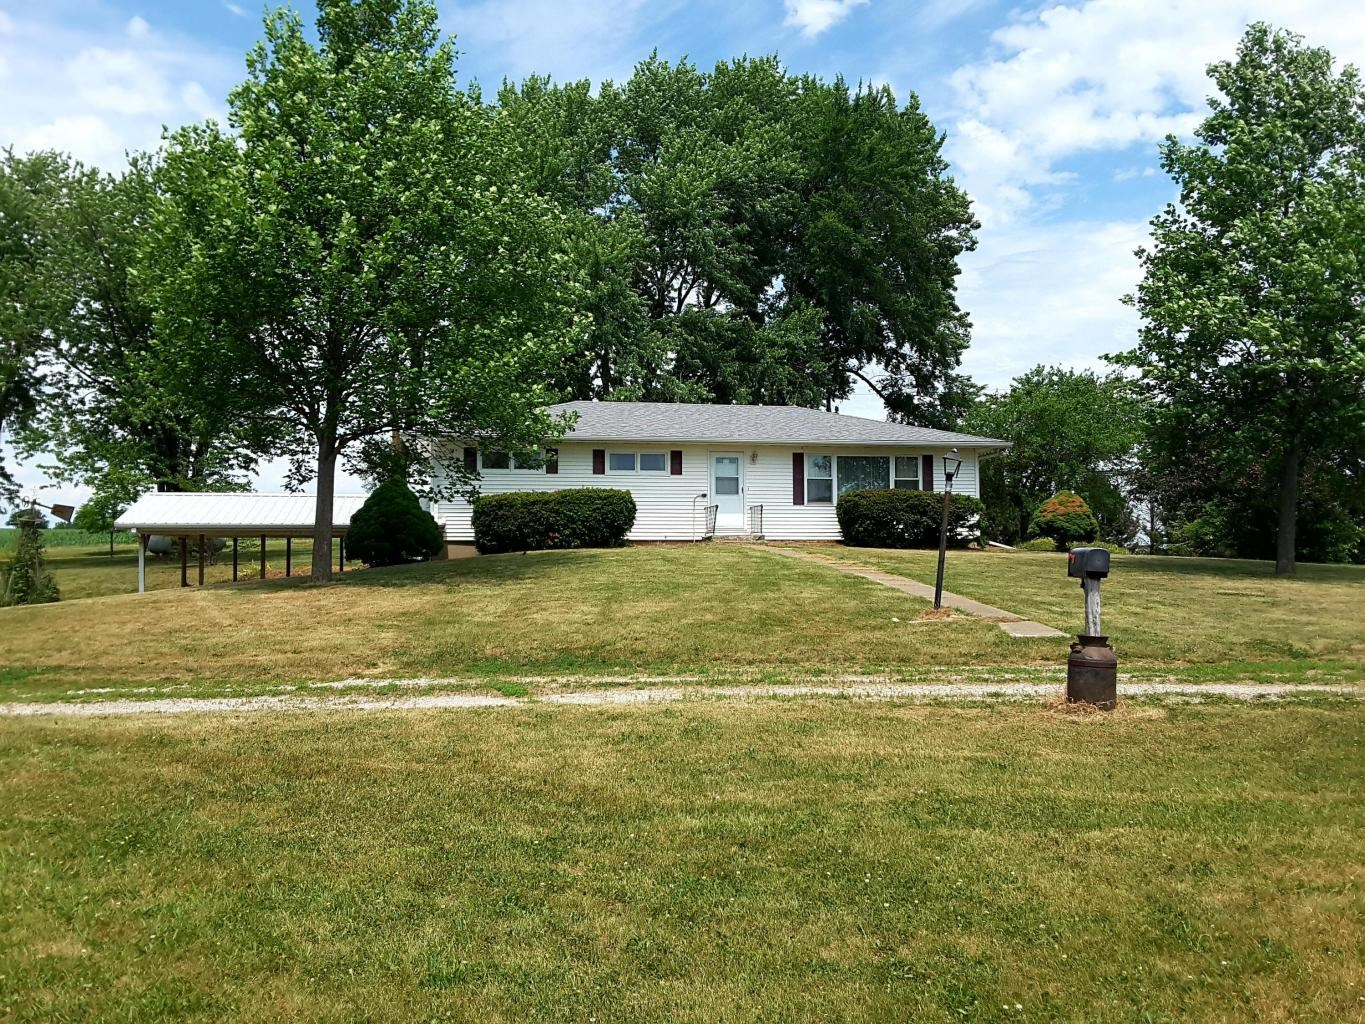 3 BEDROOM COUNTRY HOME IN NORTHWEST MISSOURI